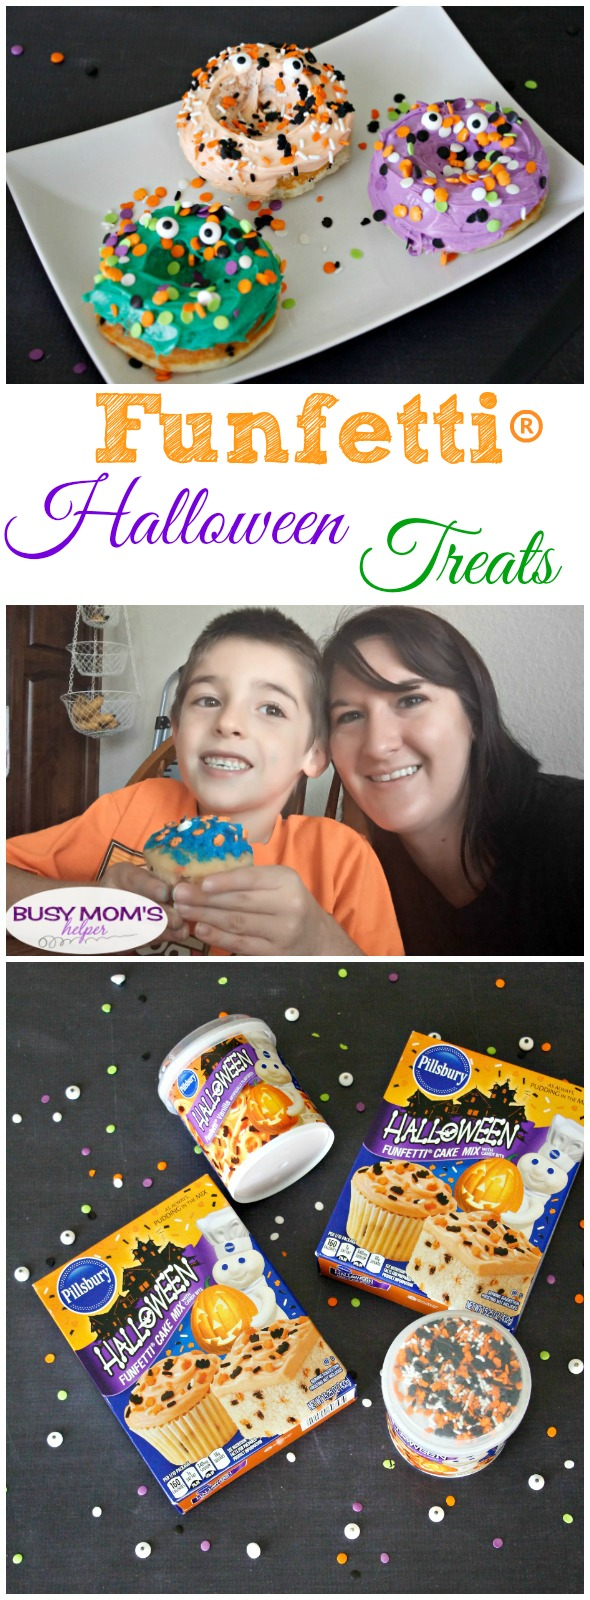 Mix Up a Moment with Funfetti® Halloween Treats #MixUpAMoment #ad